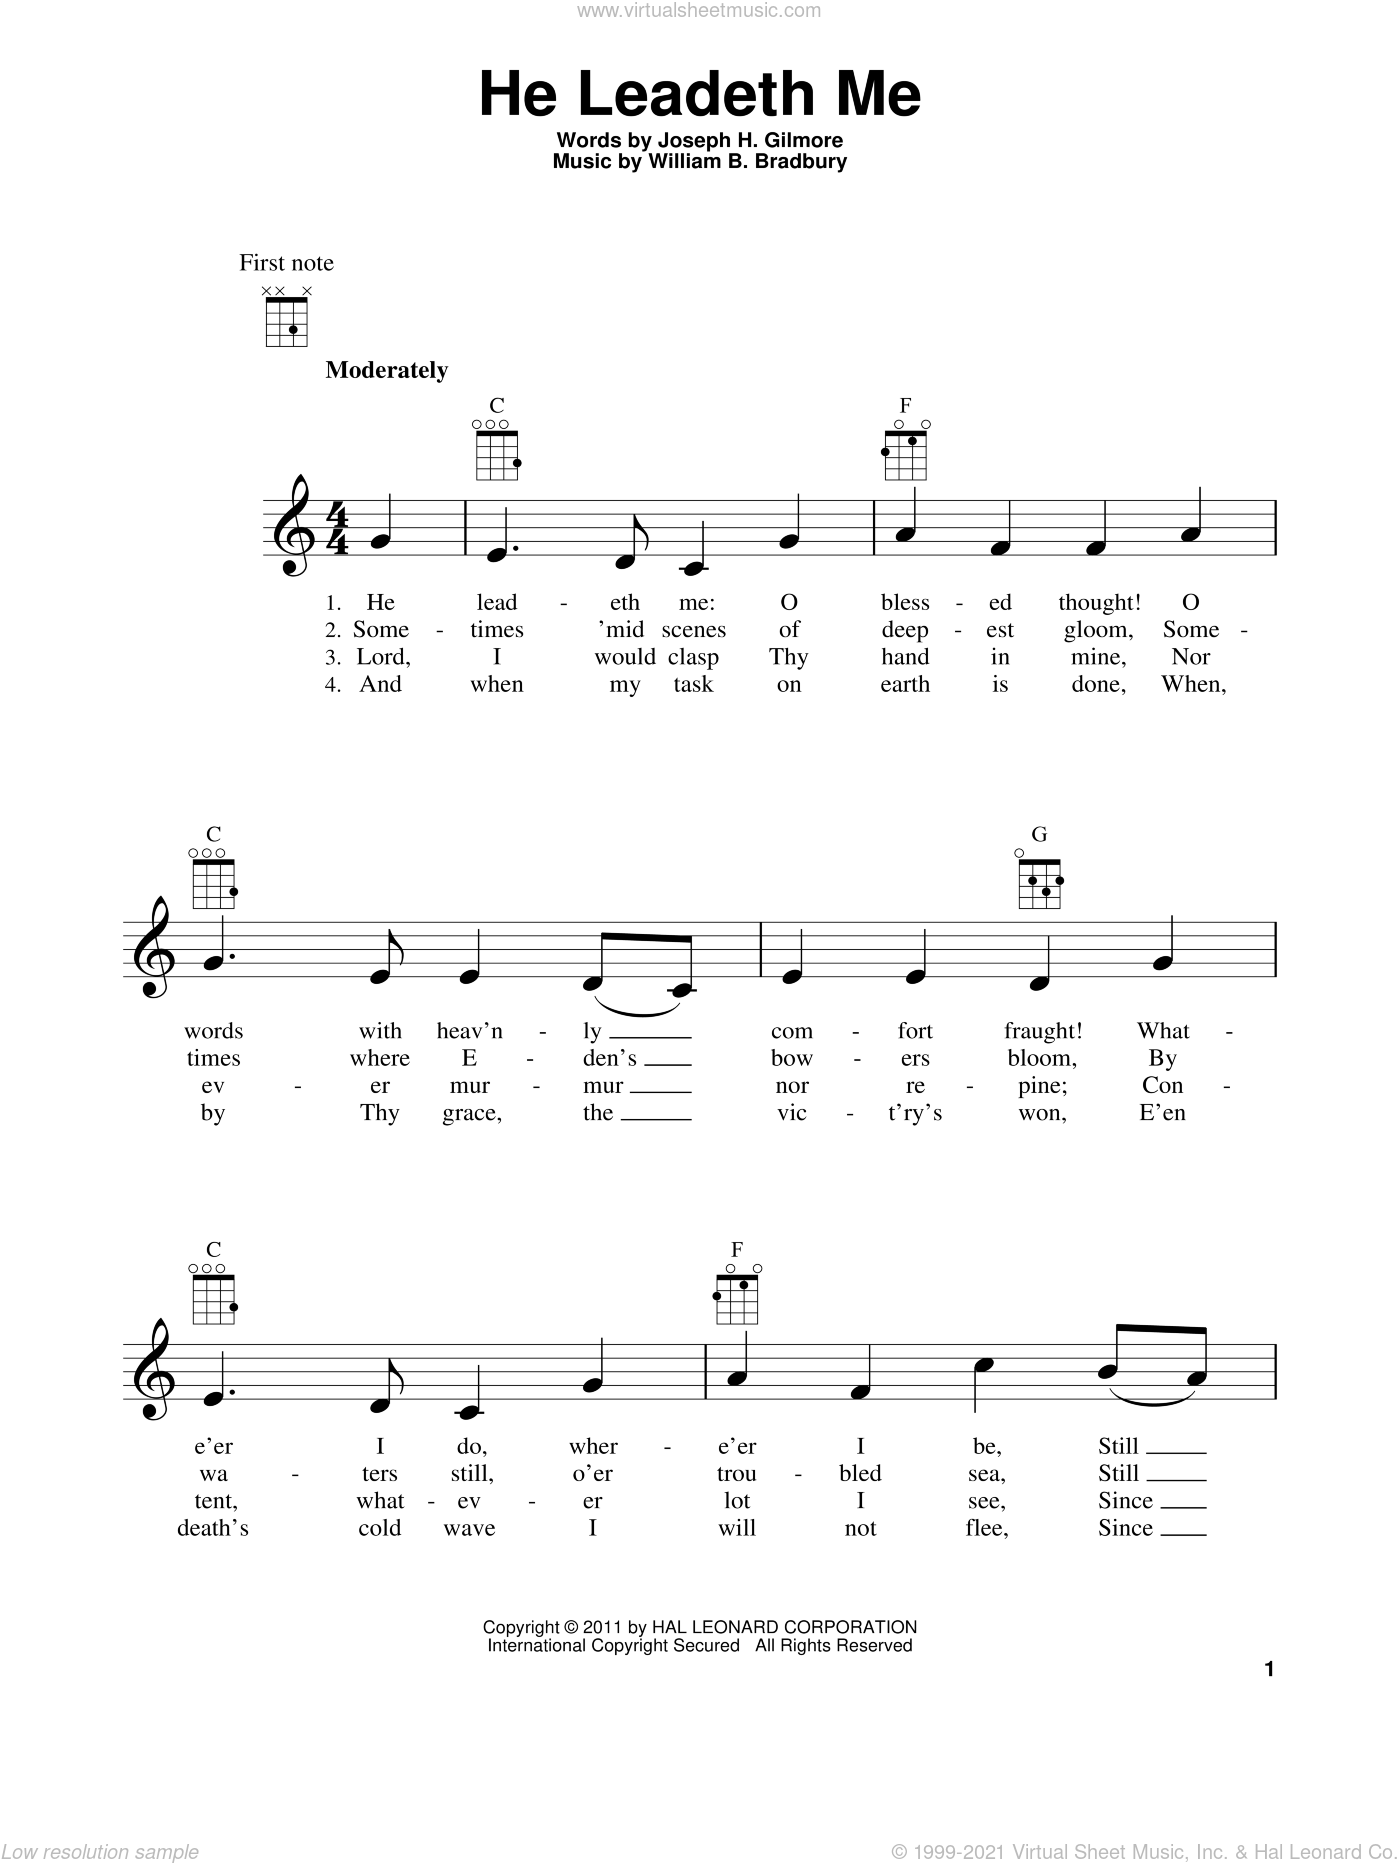 He Leadeth Me sheet music for ukulele by Joseph H. Gilmore